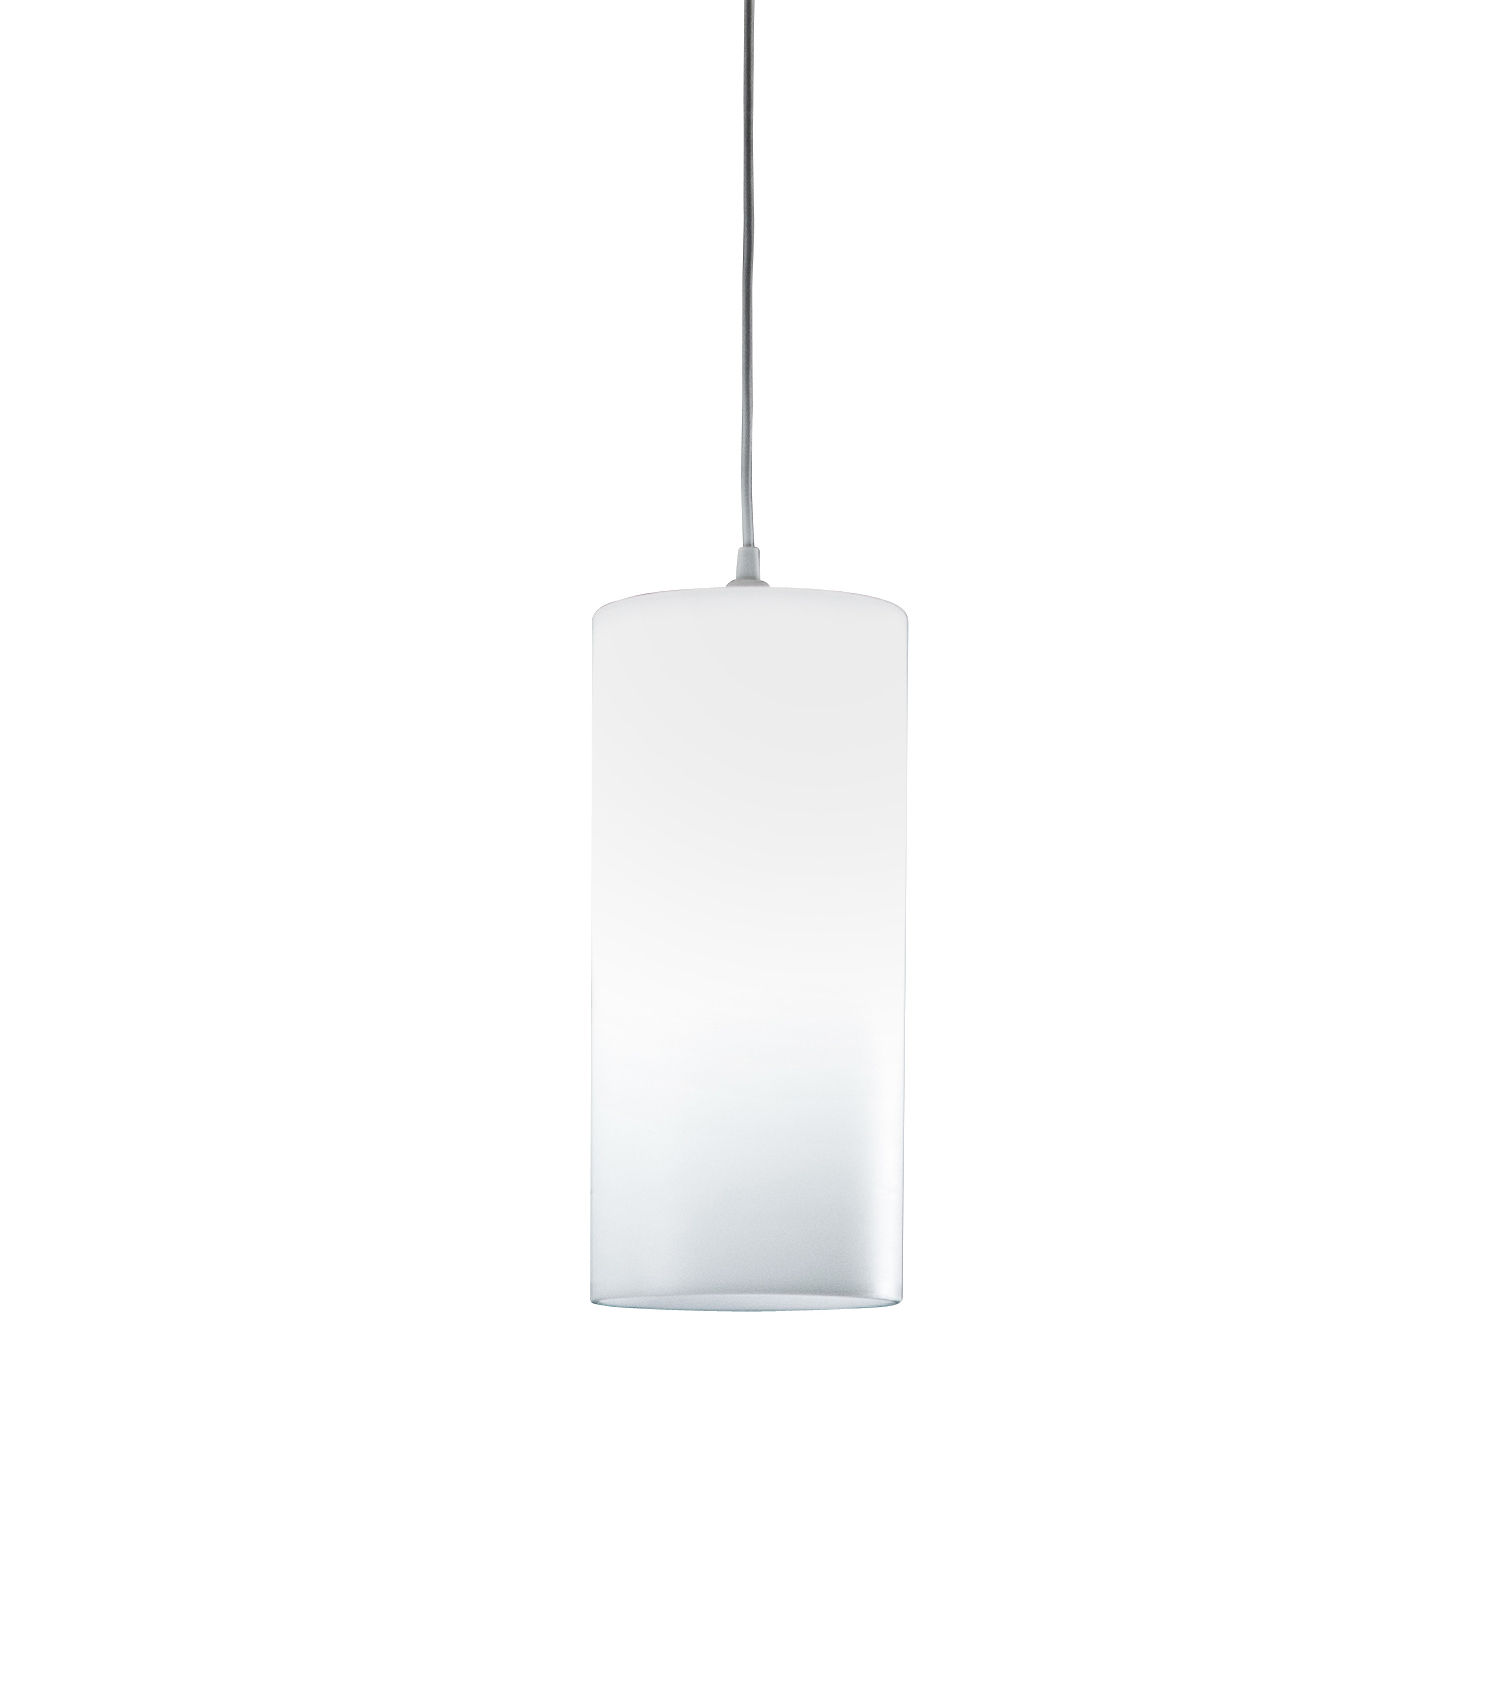 Luminaire - Suspensions - Suspension Tubo Small / H 40 cm - Stamp Edition - Small / Blanc translucide - Métal, Polypropylène